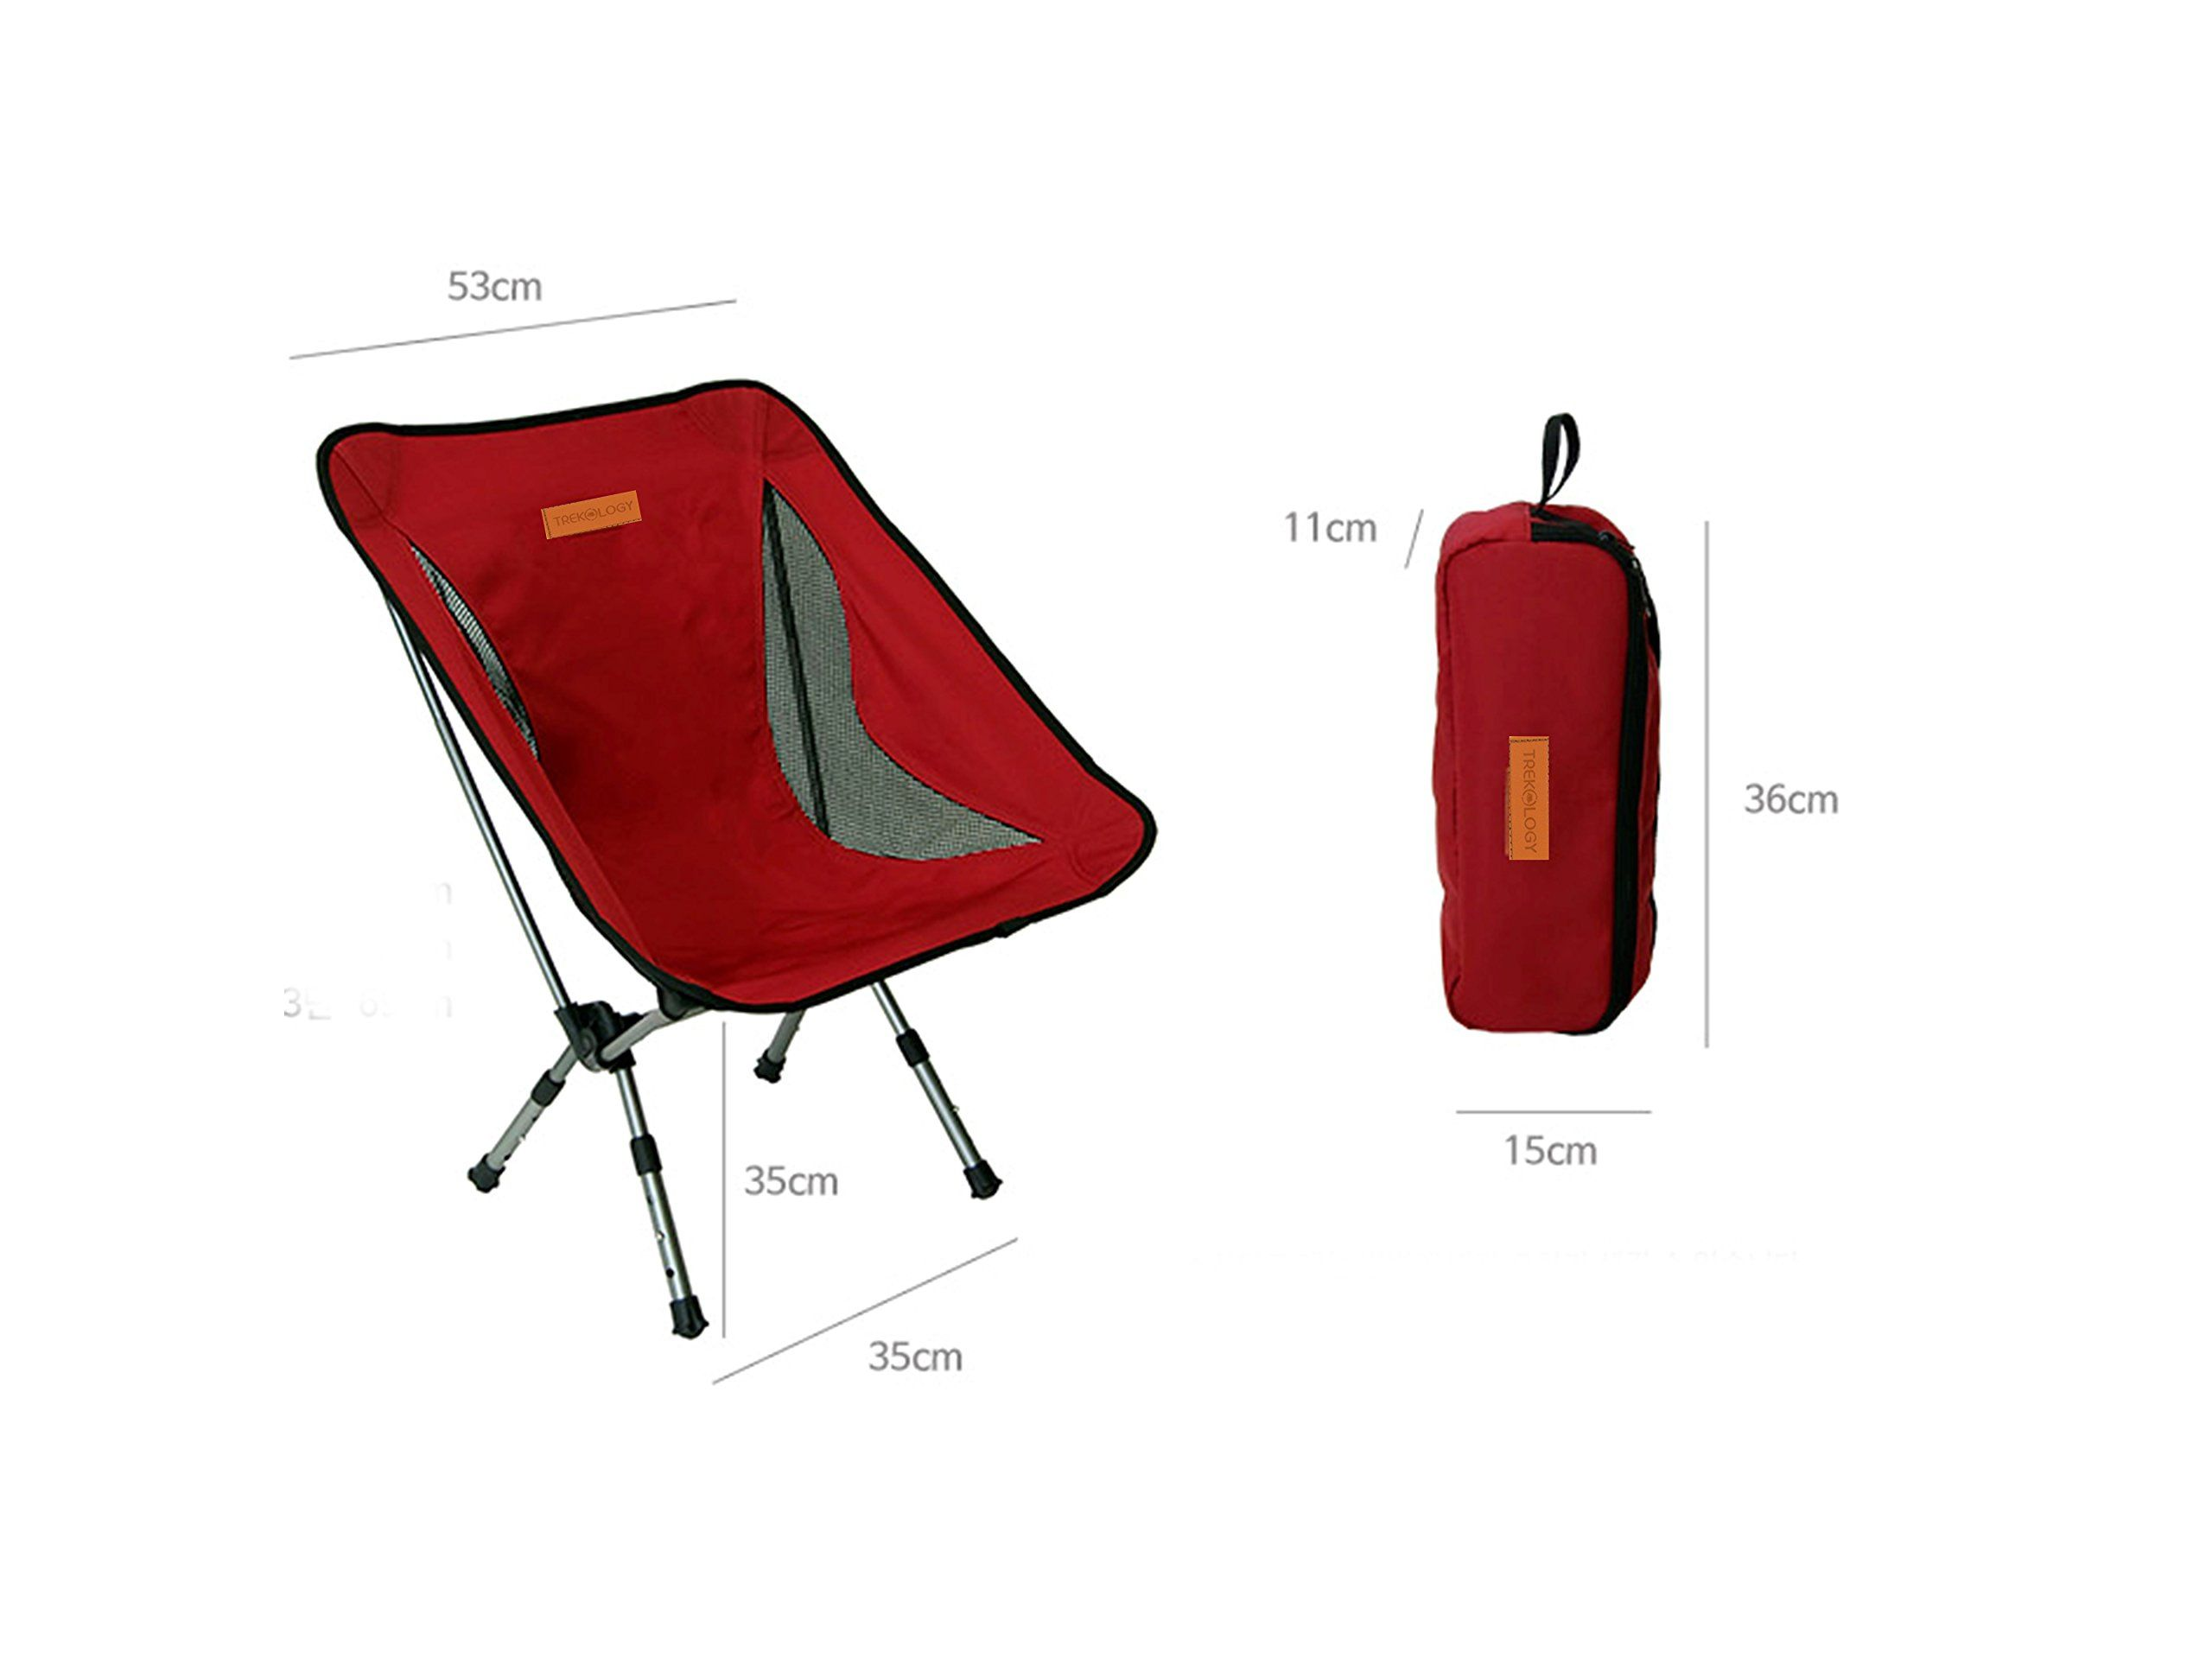 Backpacking chair ultralight - Trekology Portable Camping Chairs With Adjustable Height Compact Ultralight Folding Backpacking Chair With A Carry